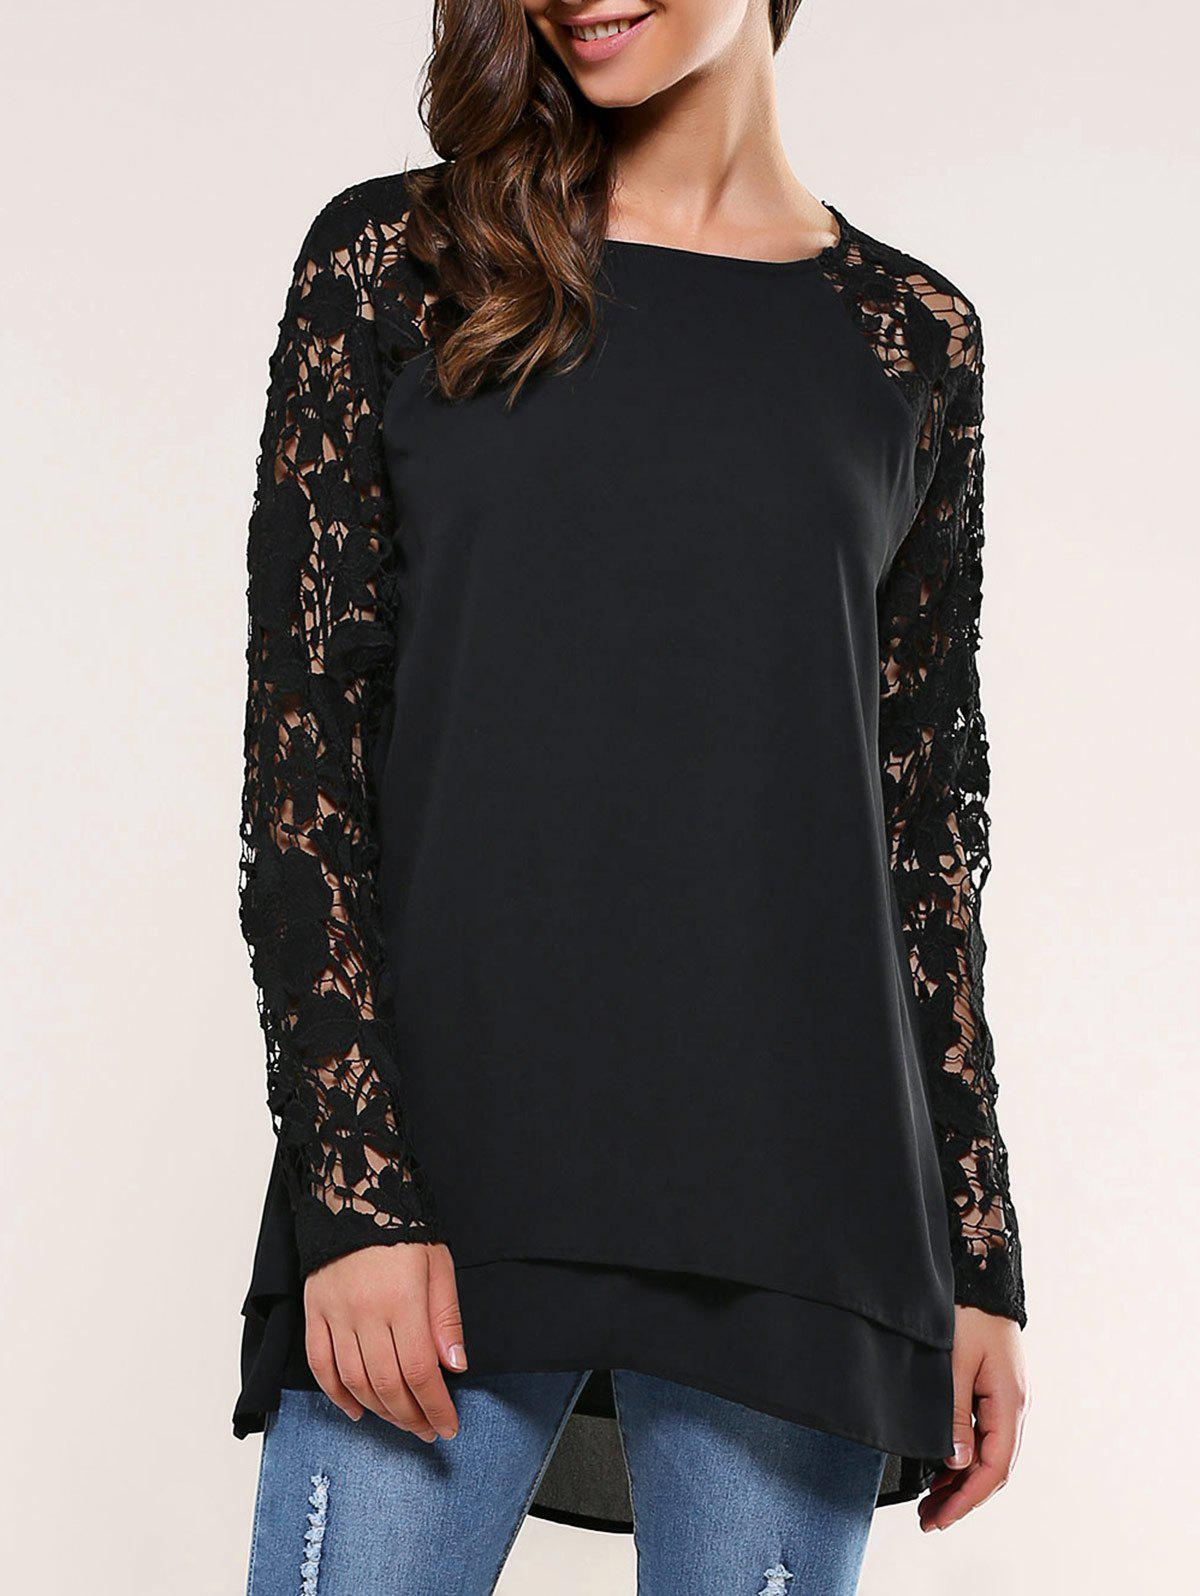 Lace Splicing BlouseWOMEN<br><br>Size: XL; Color: BLACK; Style: Casual; Material: Polyester; Shirt Length: Long; Sleeve Length: Full; Collar: Round Neck; Pattern Type: Floral; Season: Fall,Spring; Weight: 0.350kg; Package Contents: 1 x Blouse;